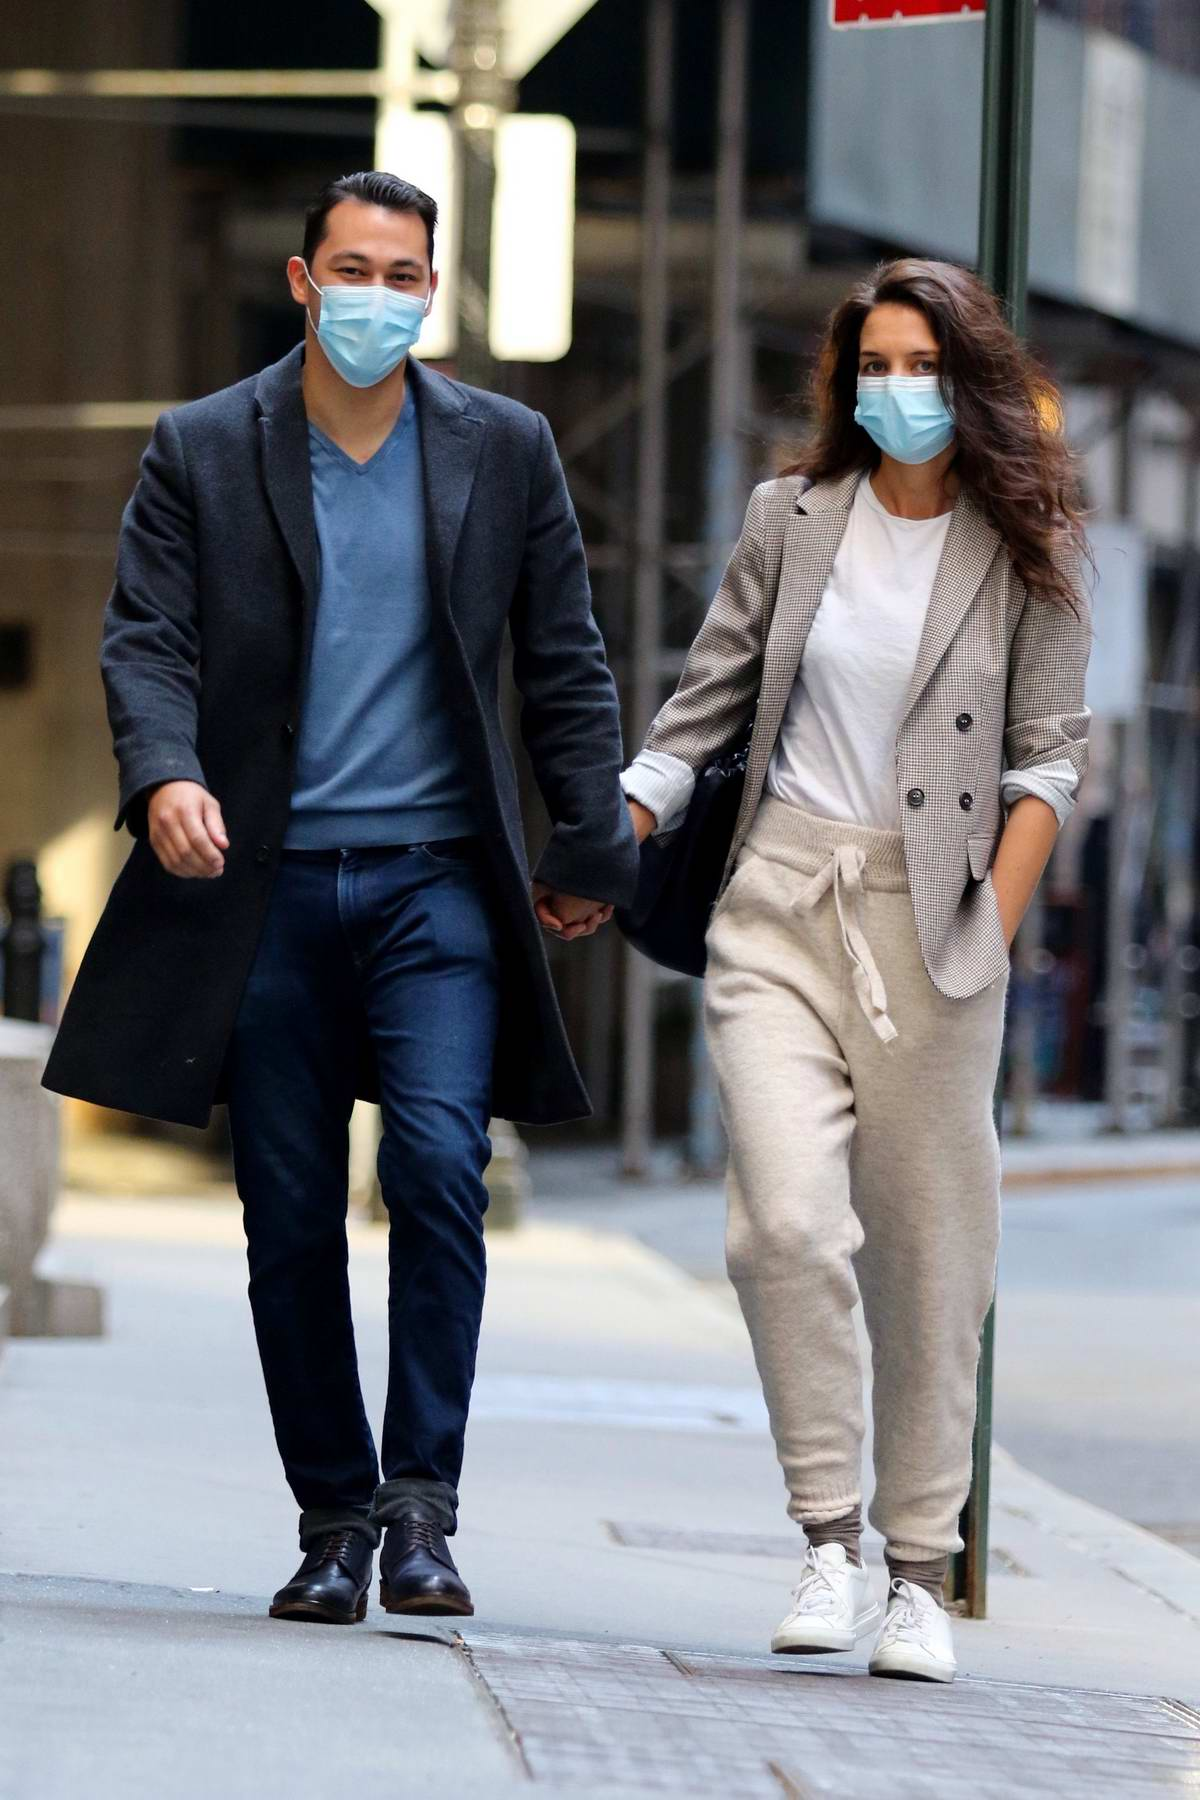 Katie Holmes and boyfriend Emilio Vitolo Jr walk hand-in-hand while out in New York City